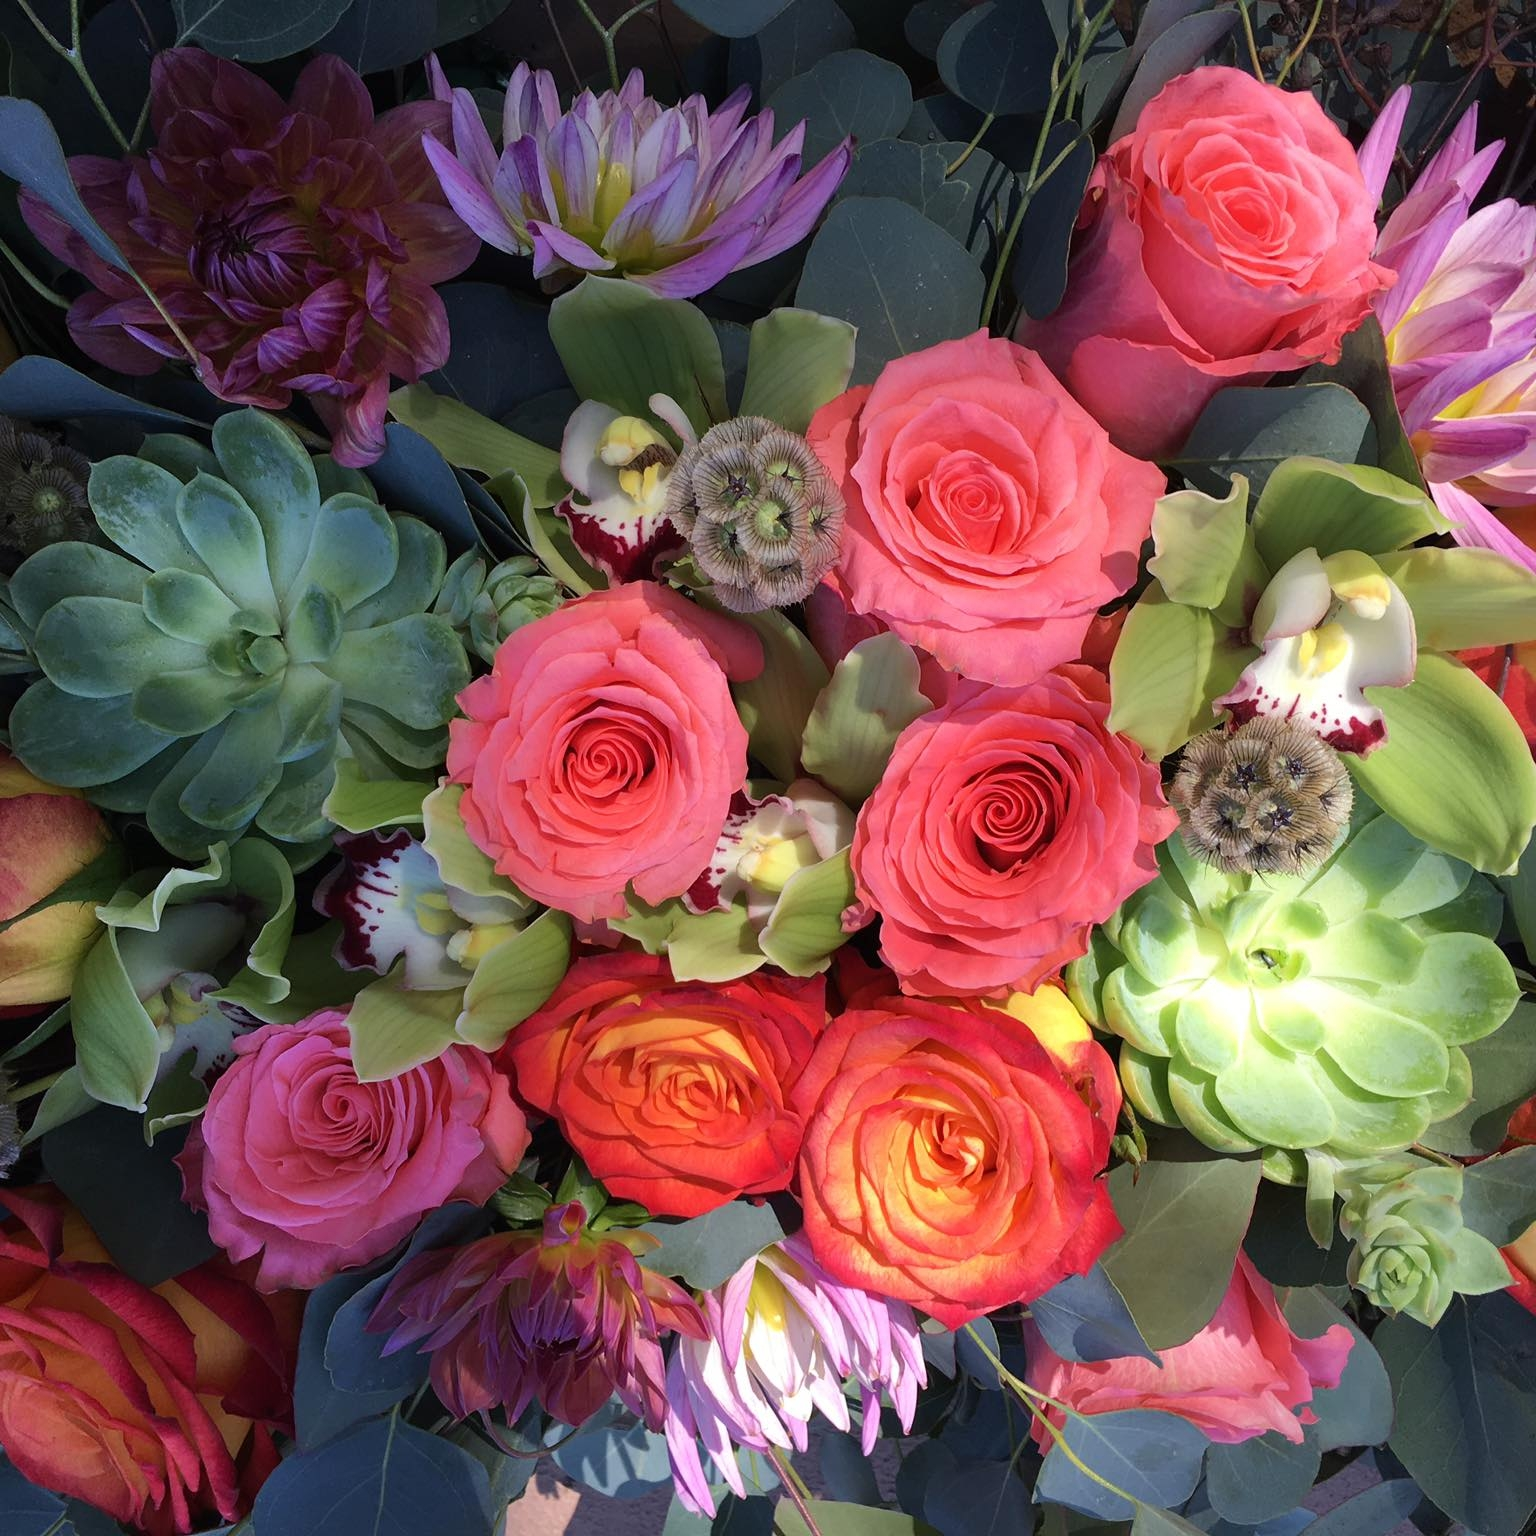 Personalized arrangements with native plants, succulents,and of course an array of mom's favorite flowers